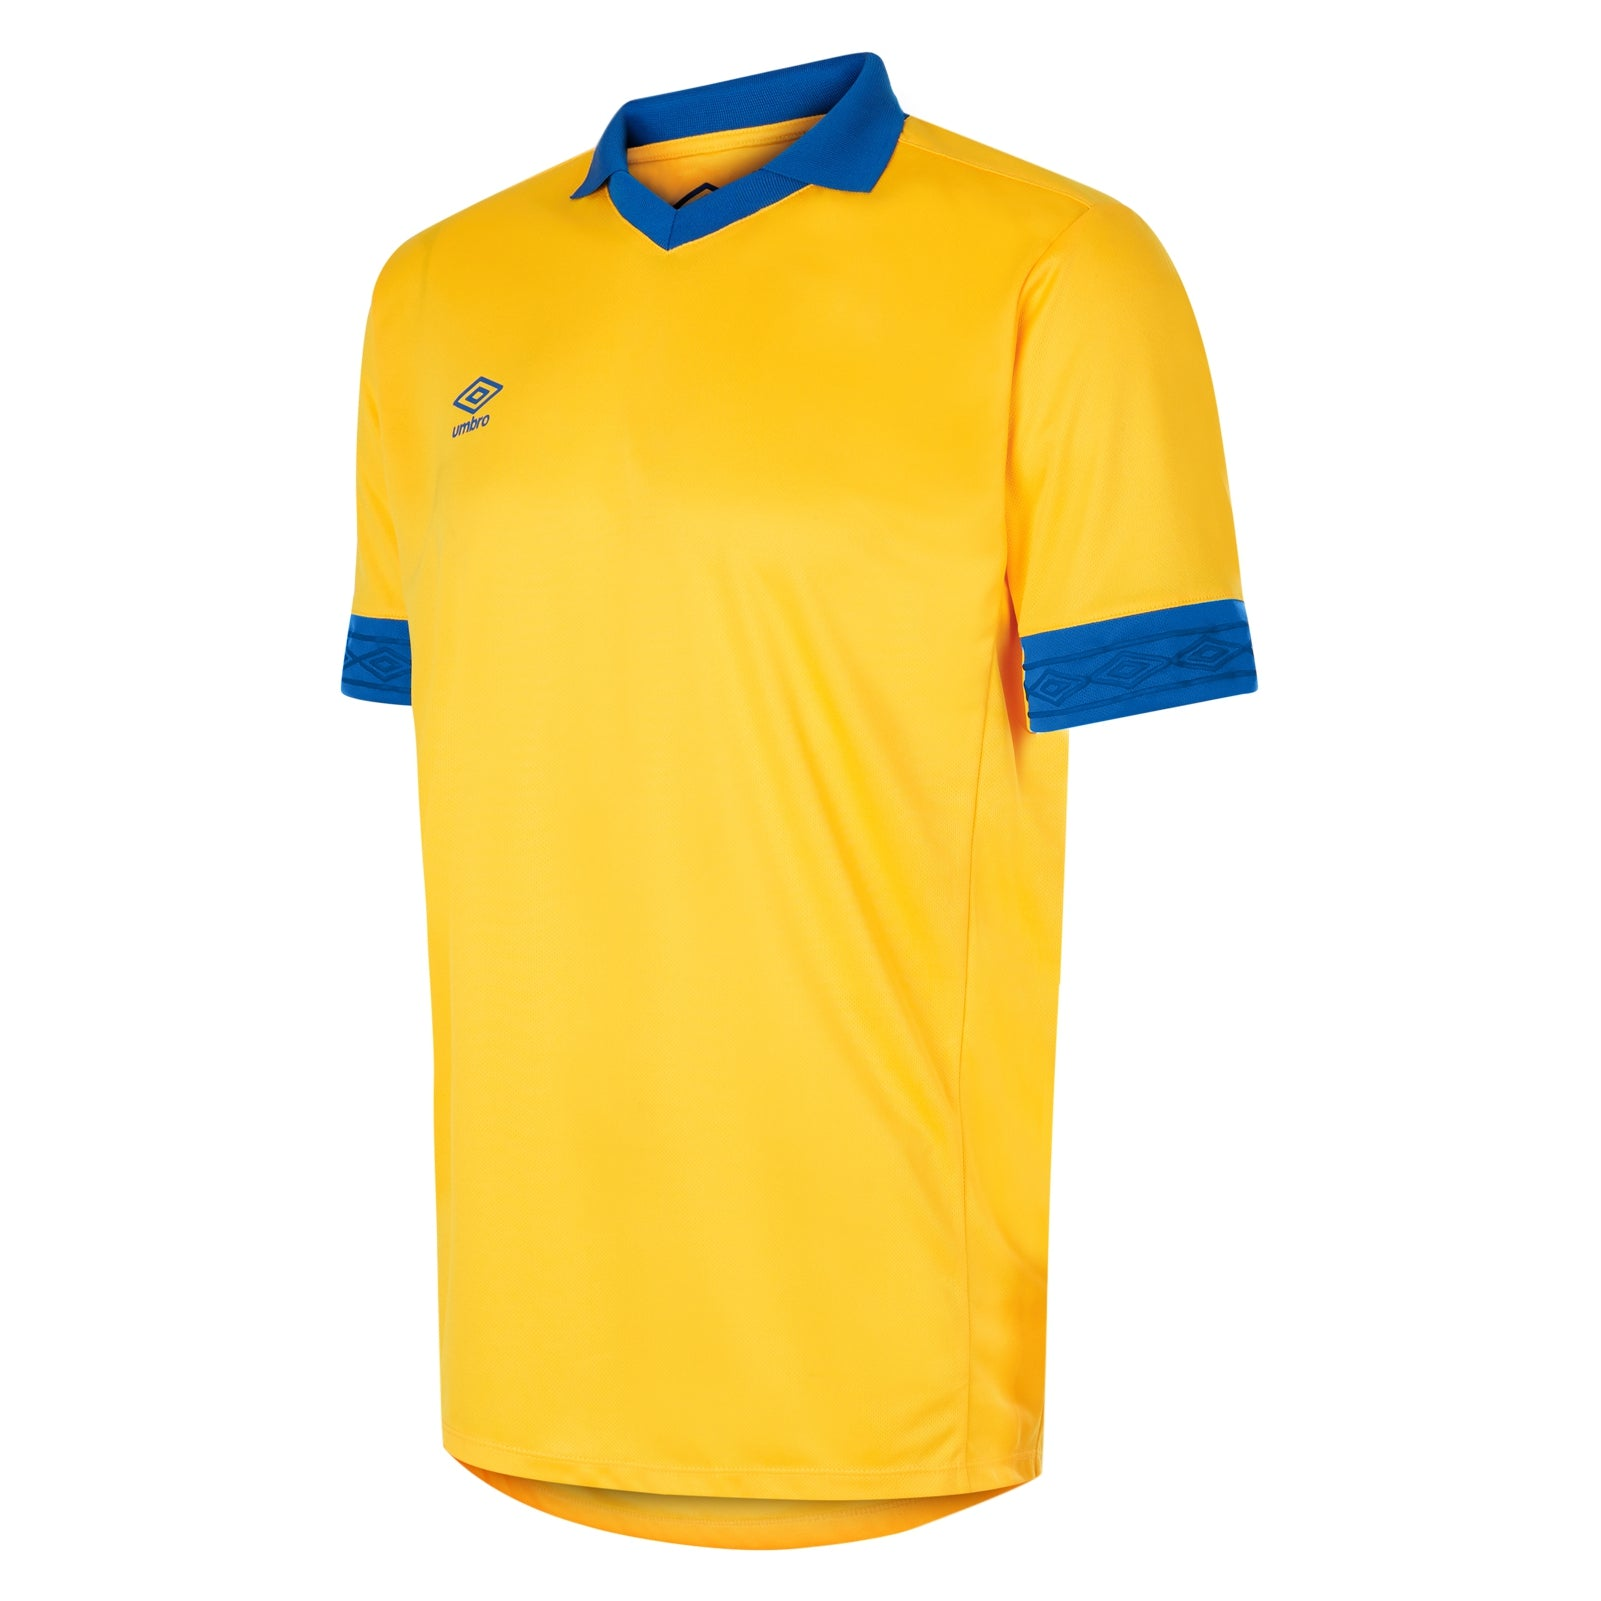 Umbro Tempest jersey short sleeve in yellow with contrast royal blue collar and cuff